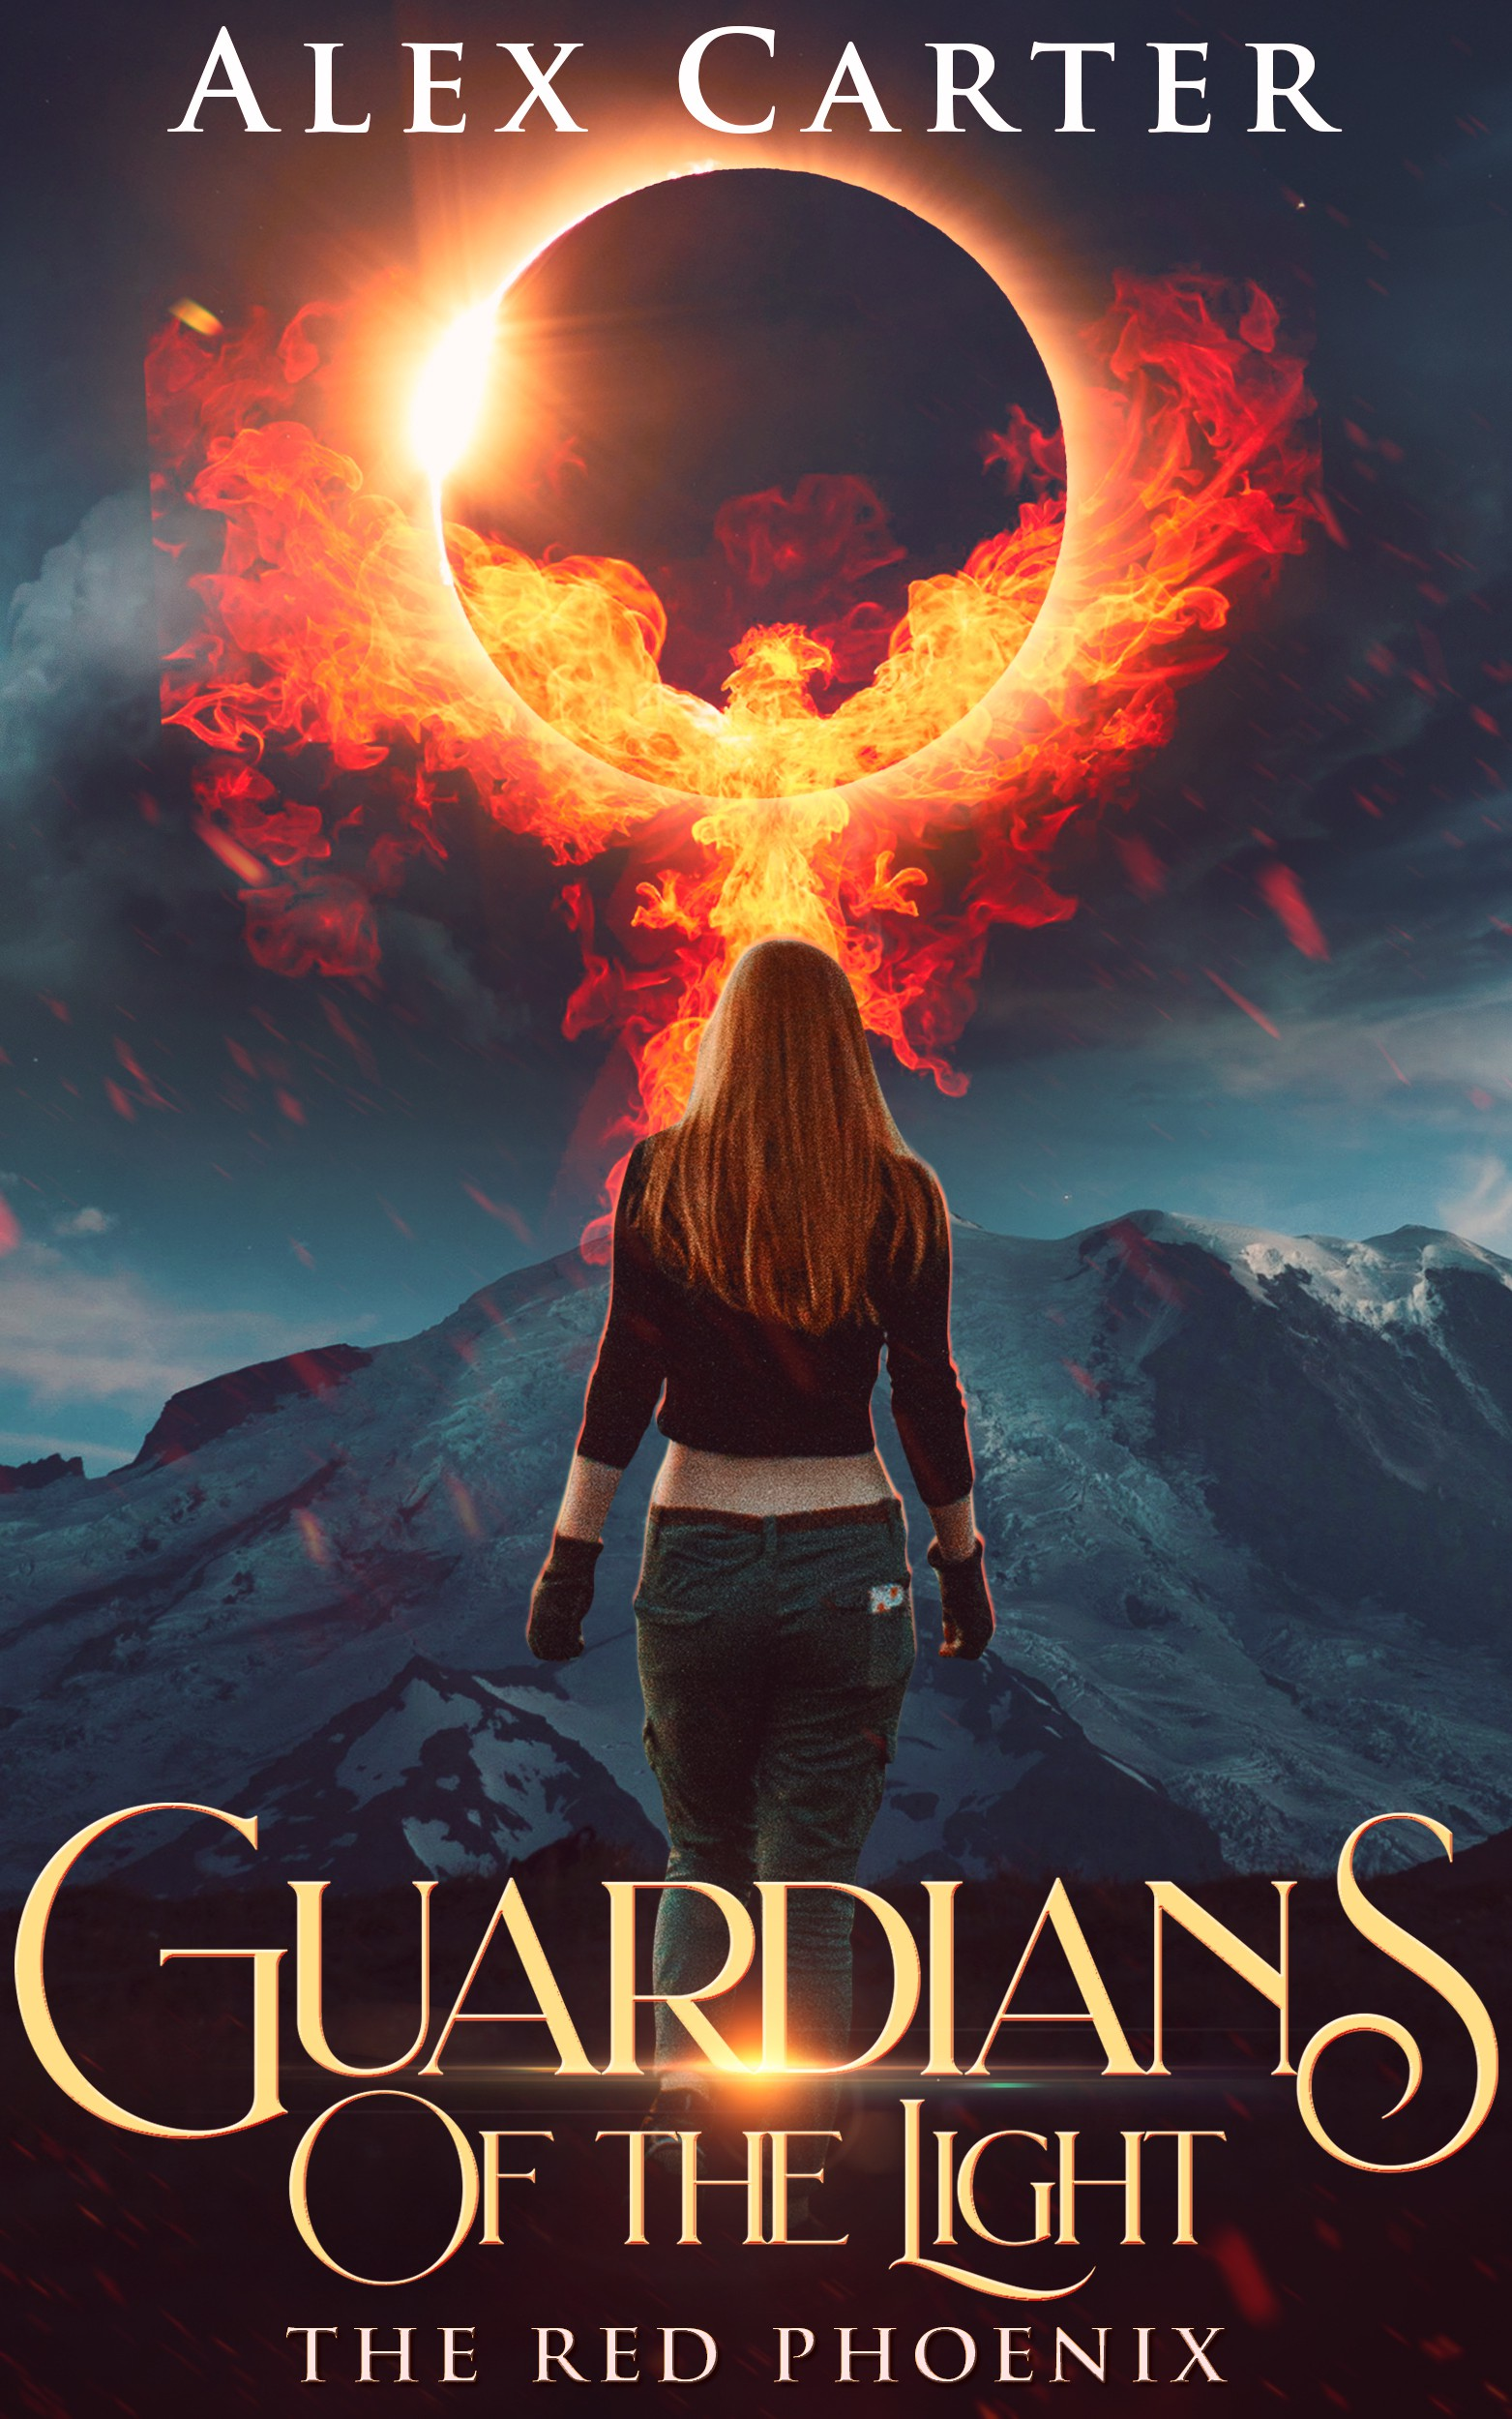 Book cover design for exciting new Fantasy Series